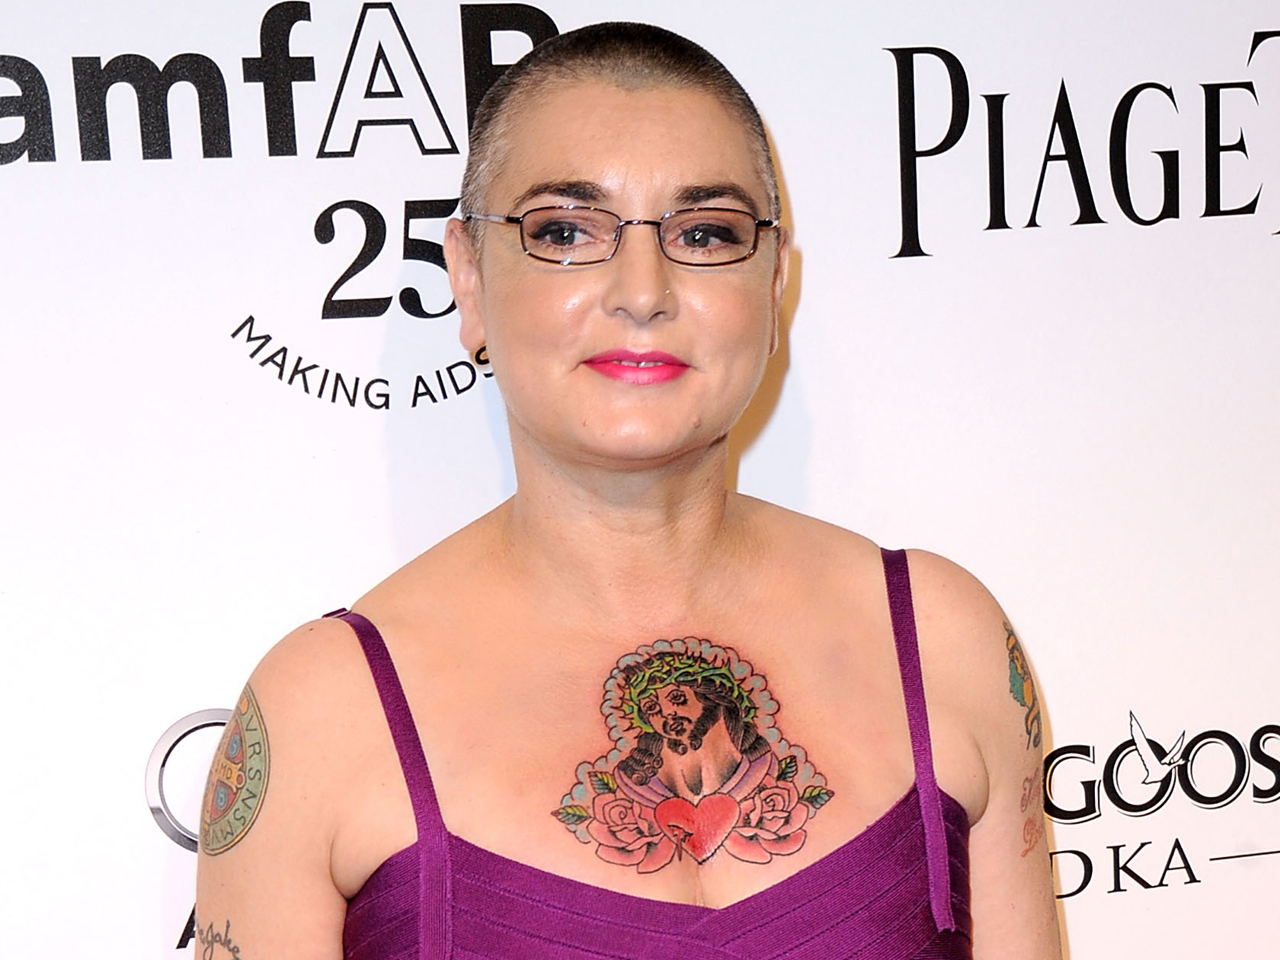 Sinead O'Connor, un post su Facebook per dire addio alla vita. E' salva